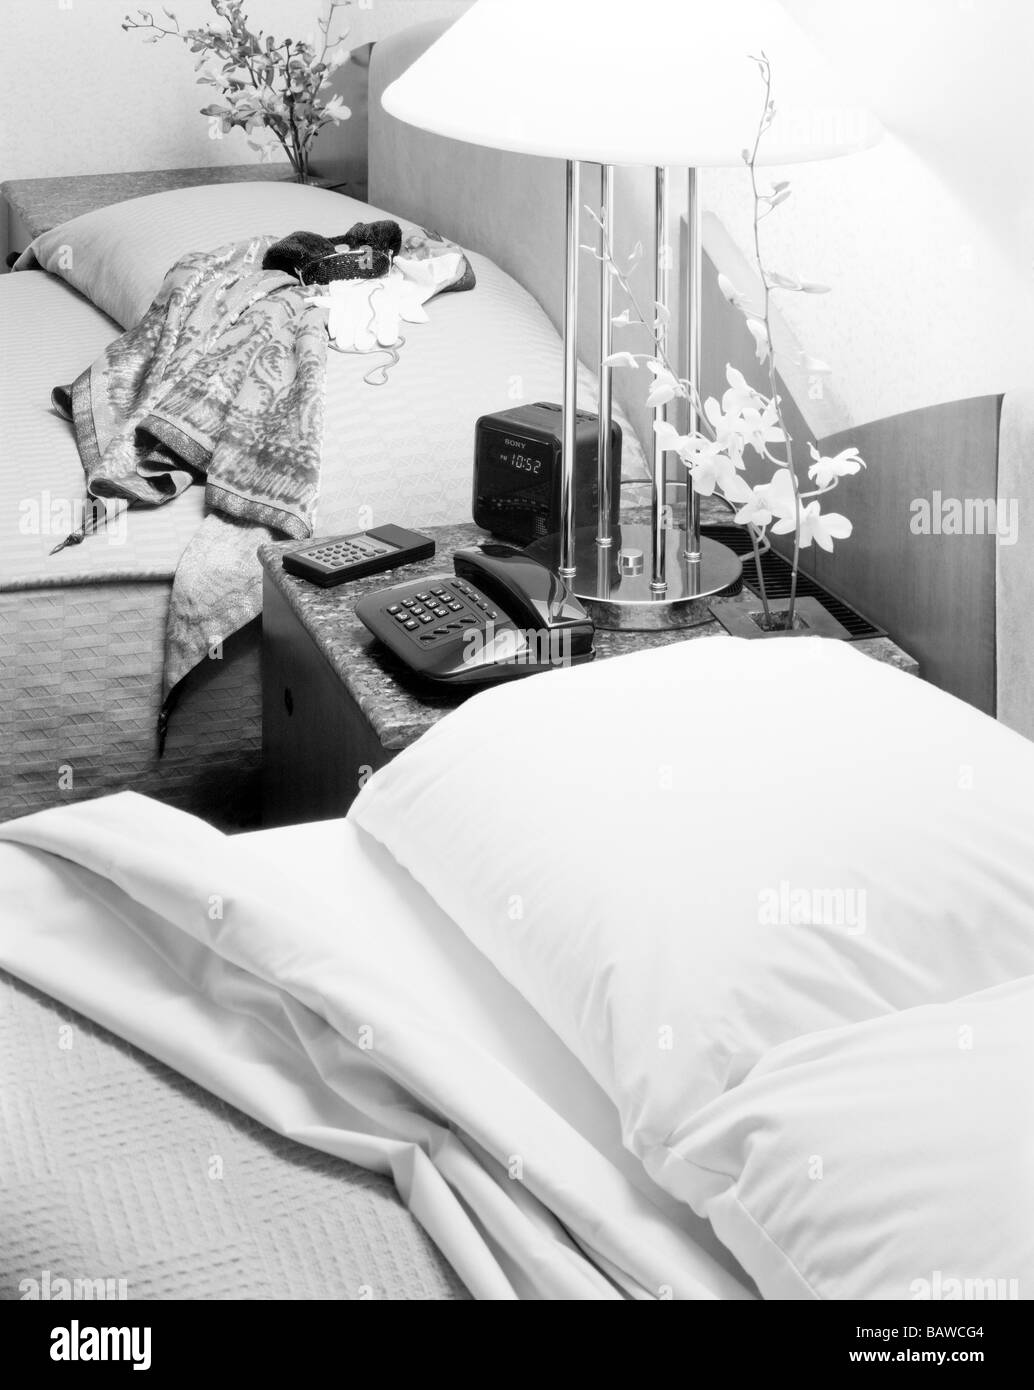 Page 2 Black Headboard White Pillow High Resolution Stock Photography And Images Alamy